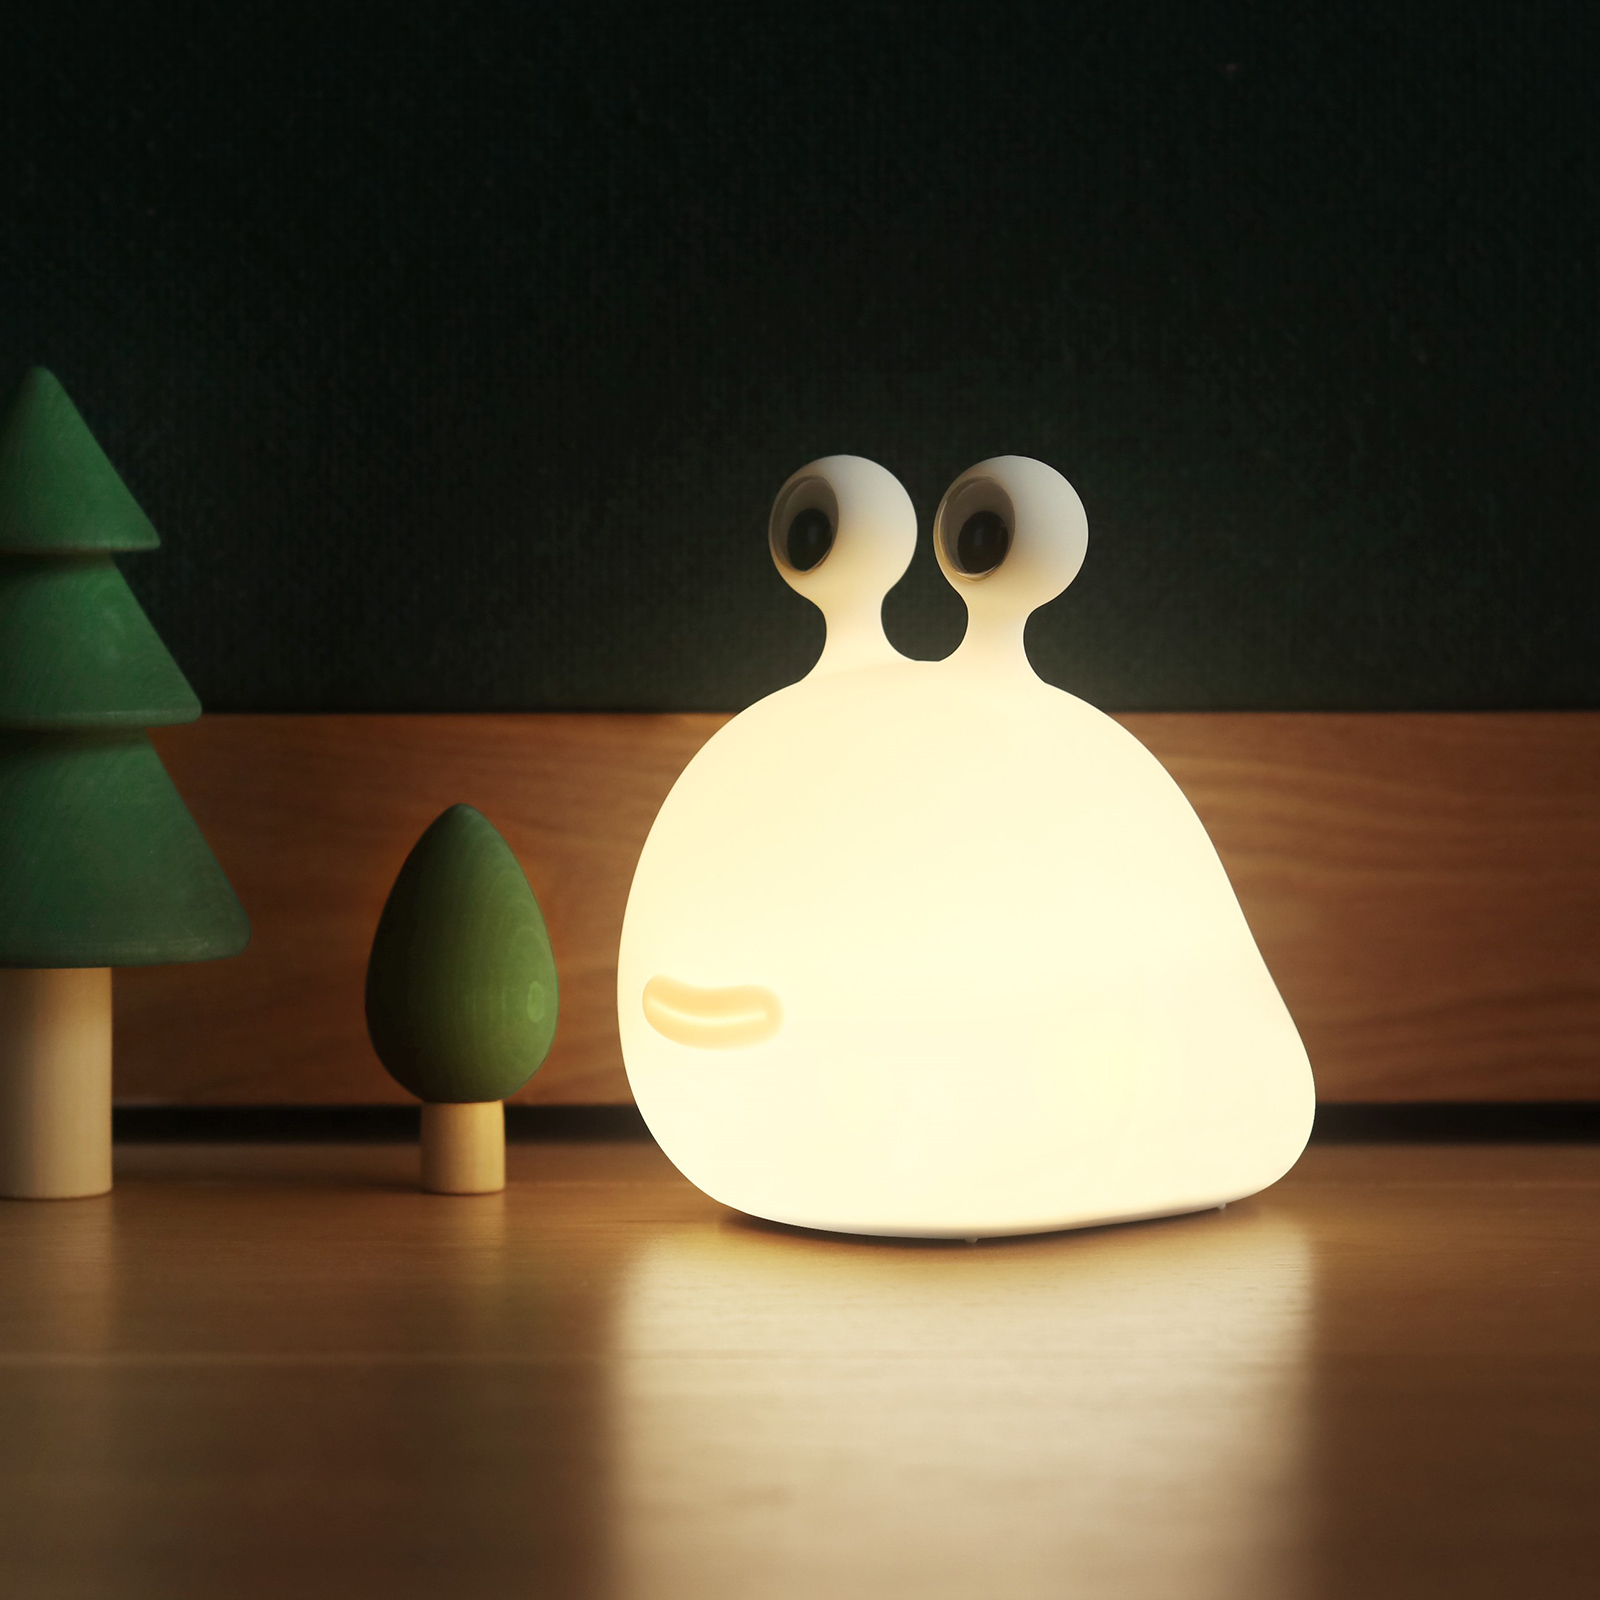 Momo Moon LED night light with battery and USB_5400366_1